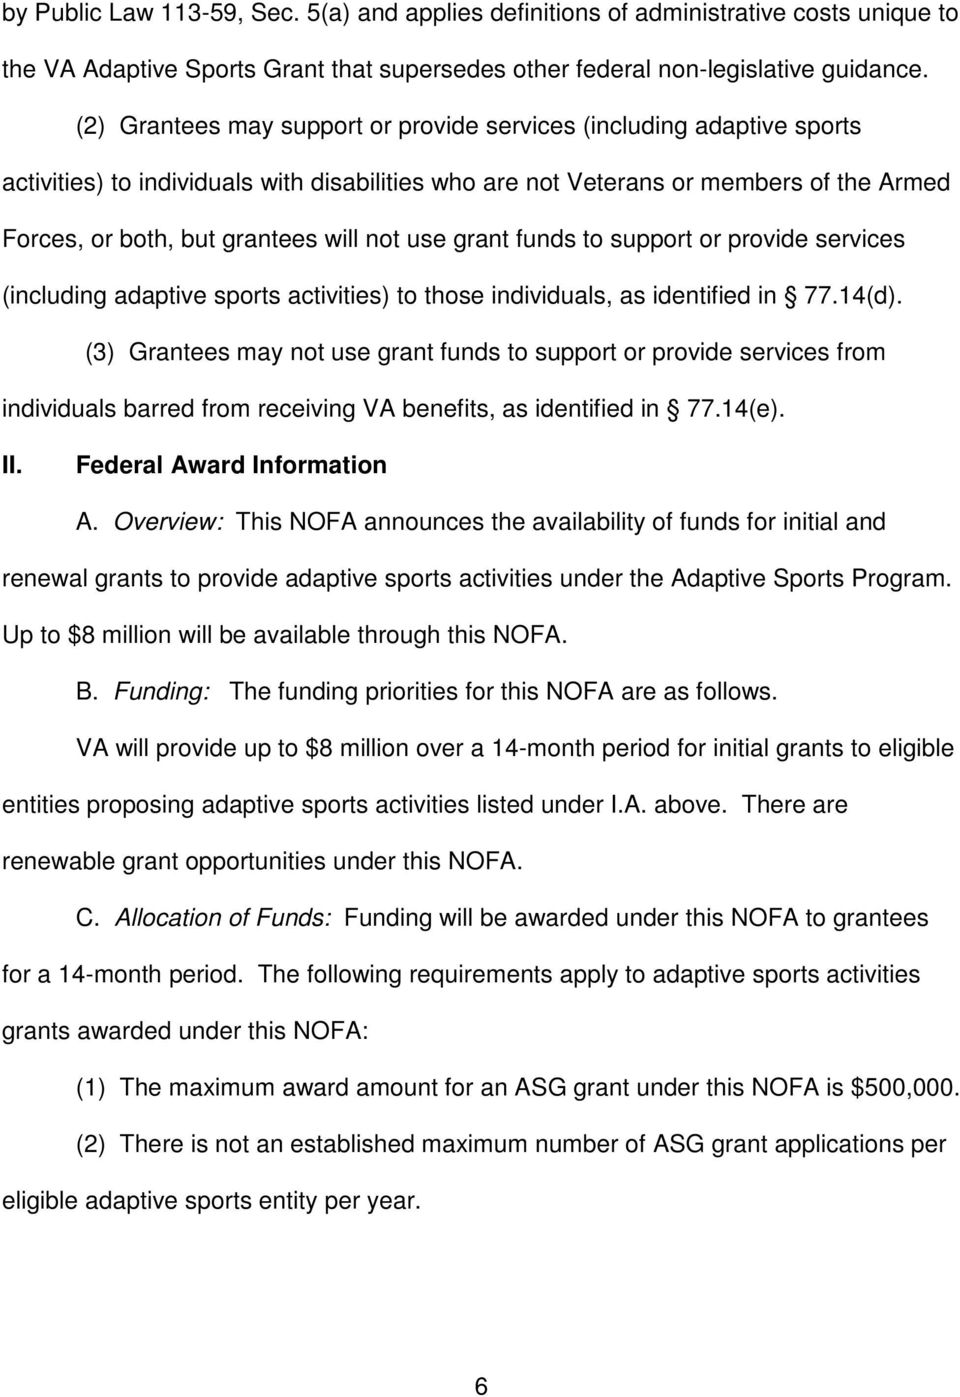 not use grant funds to support or provide services (including adaptive sports activities) to those individuals, as identified in 77.14(d).